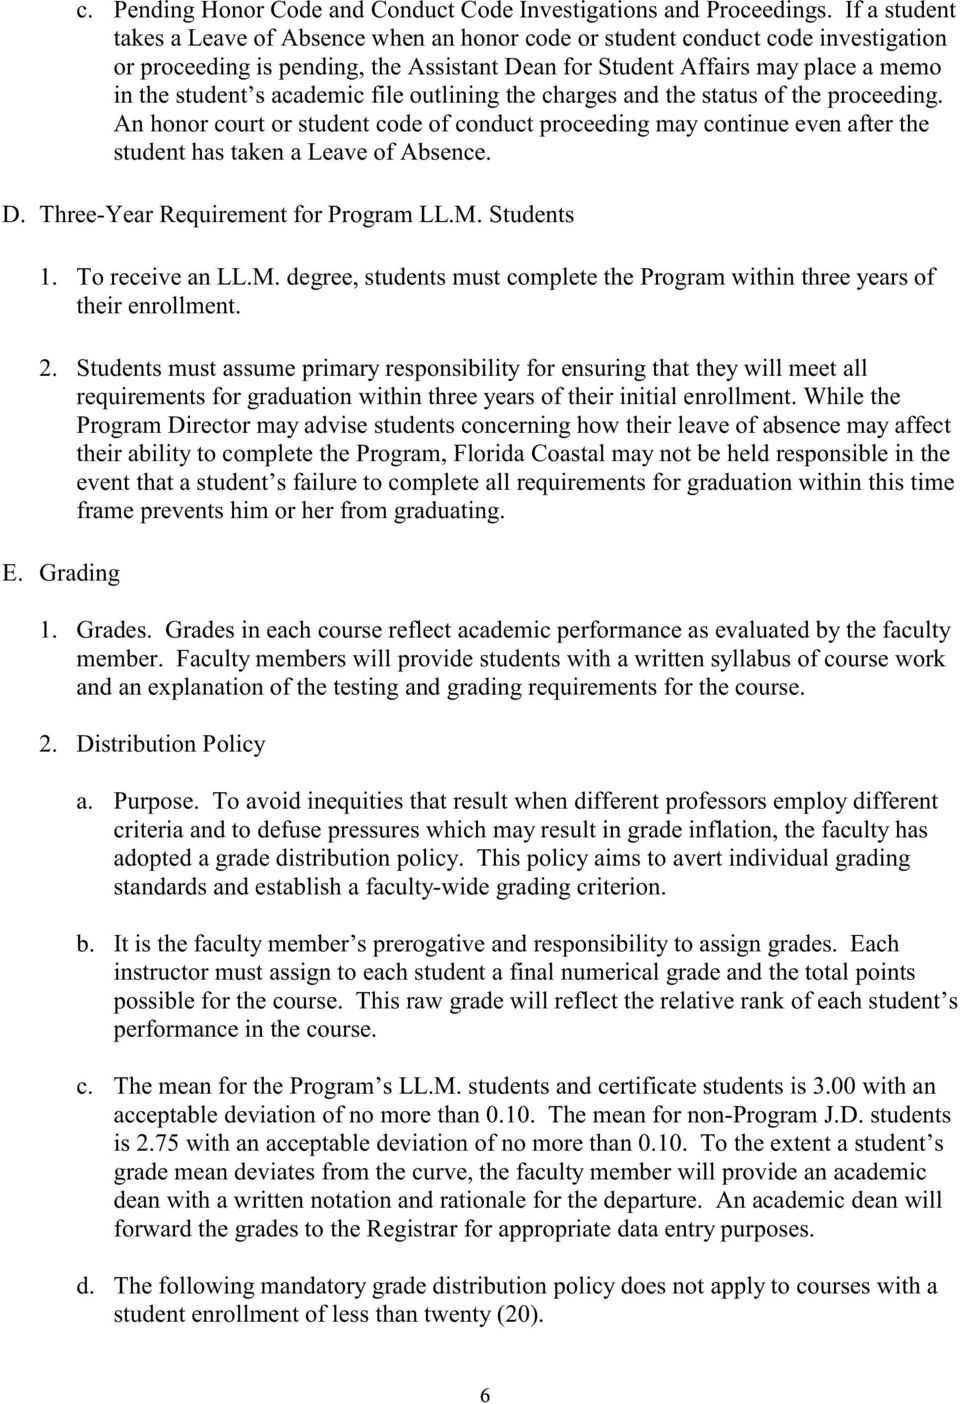 academic file outlining the charges and the status of the proceeding. An honor court or student code of conduct proceeding may continue even after the student has taken a Leave of Absence. D.